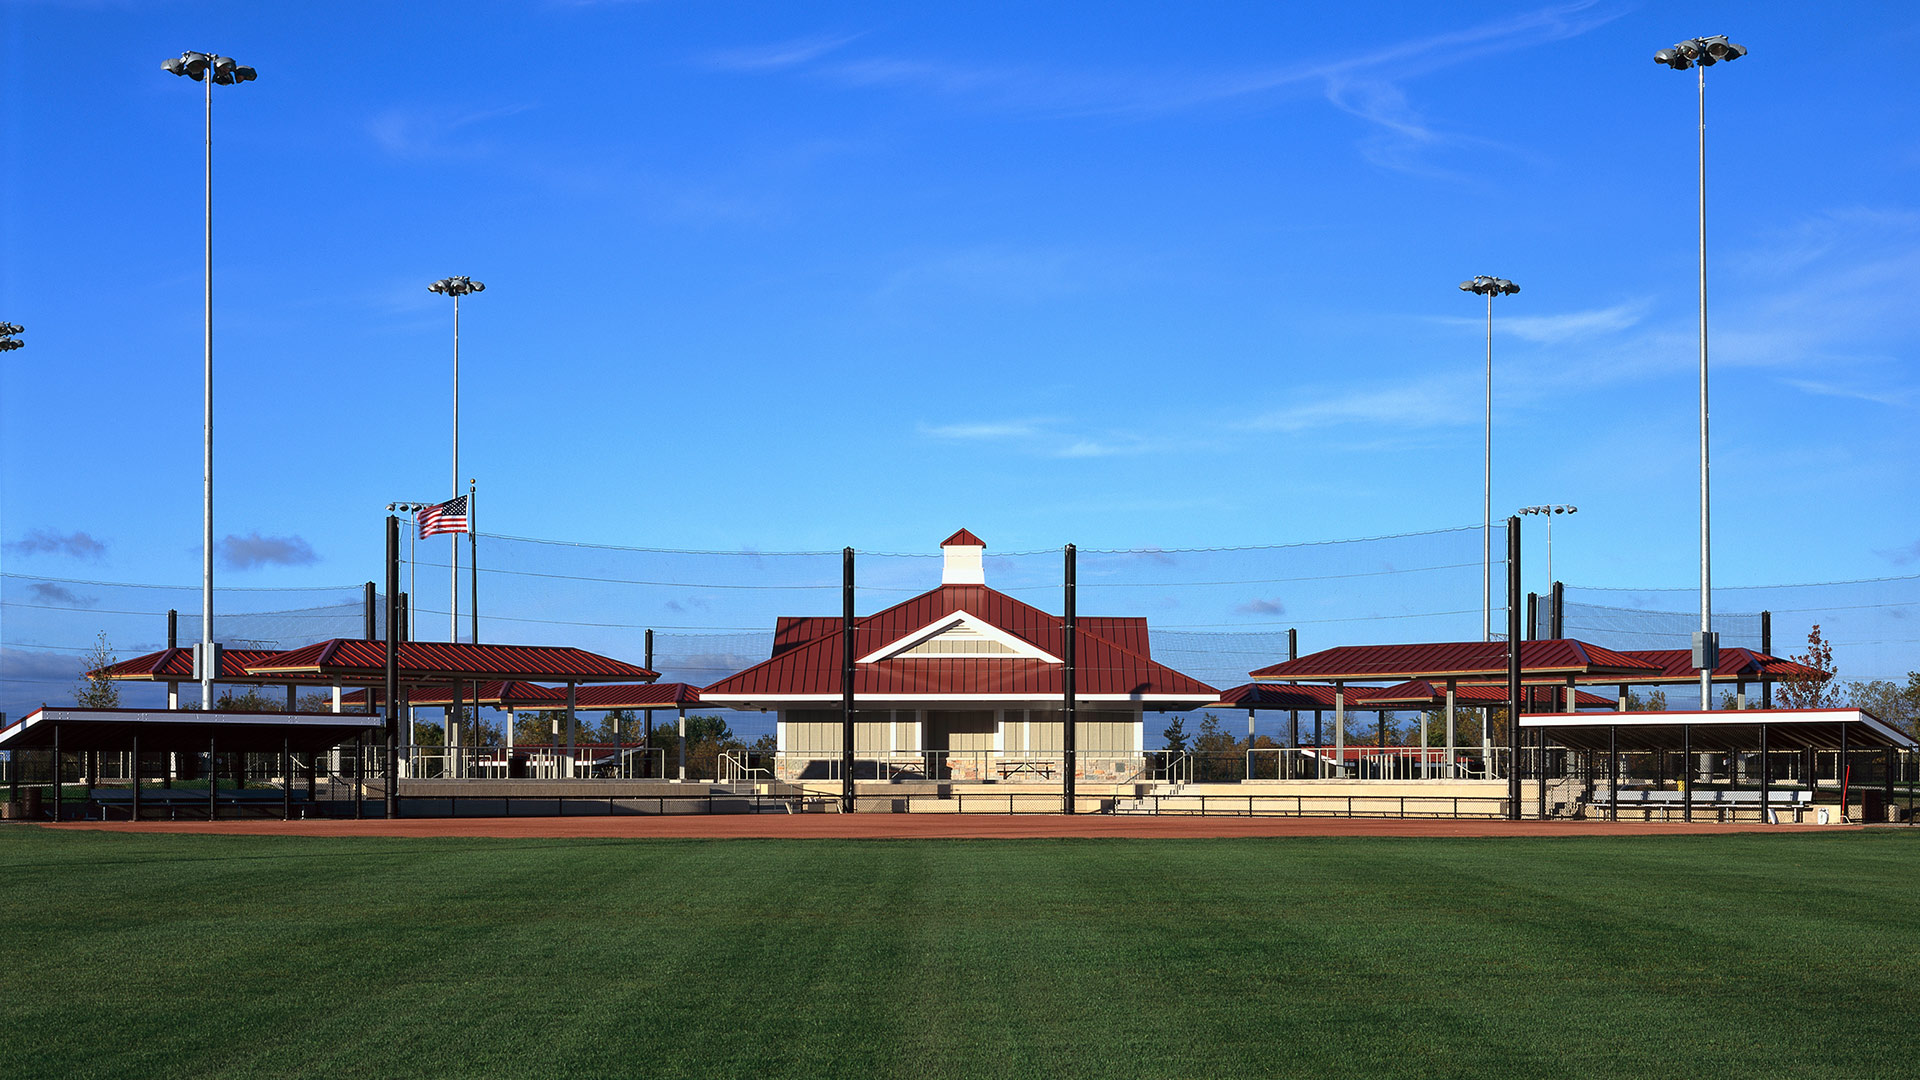 Waukegan Park District Outdoor Sports Complex